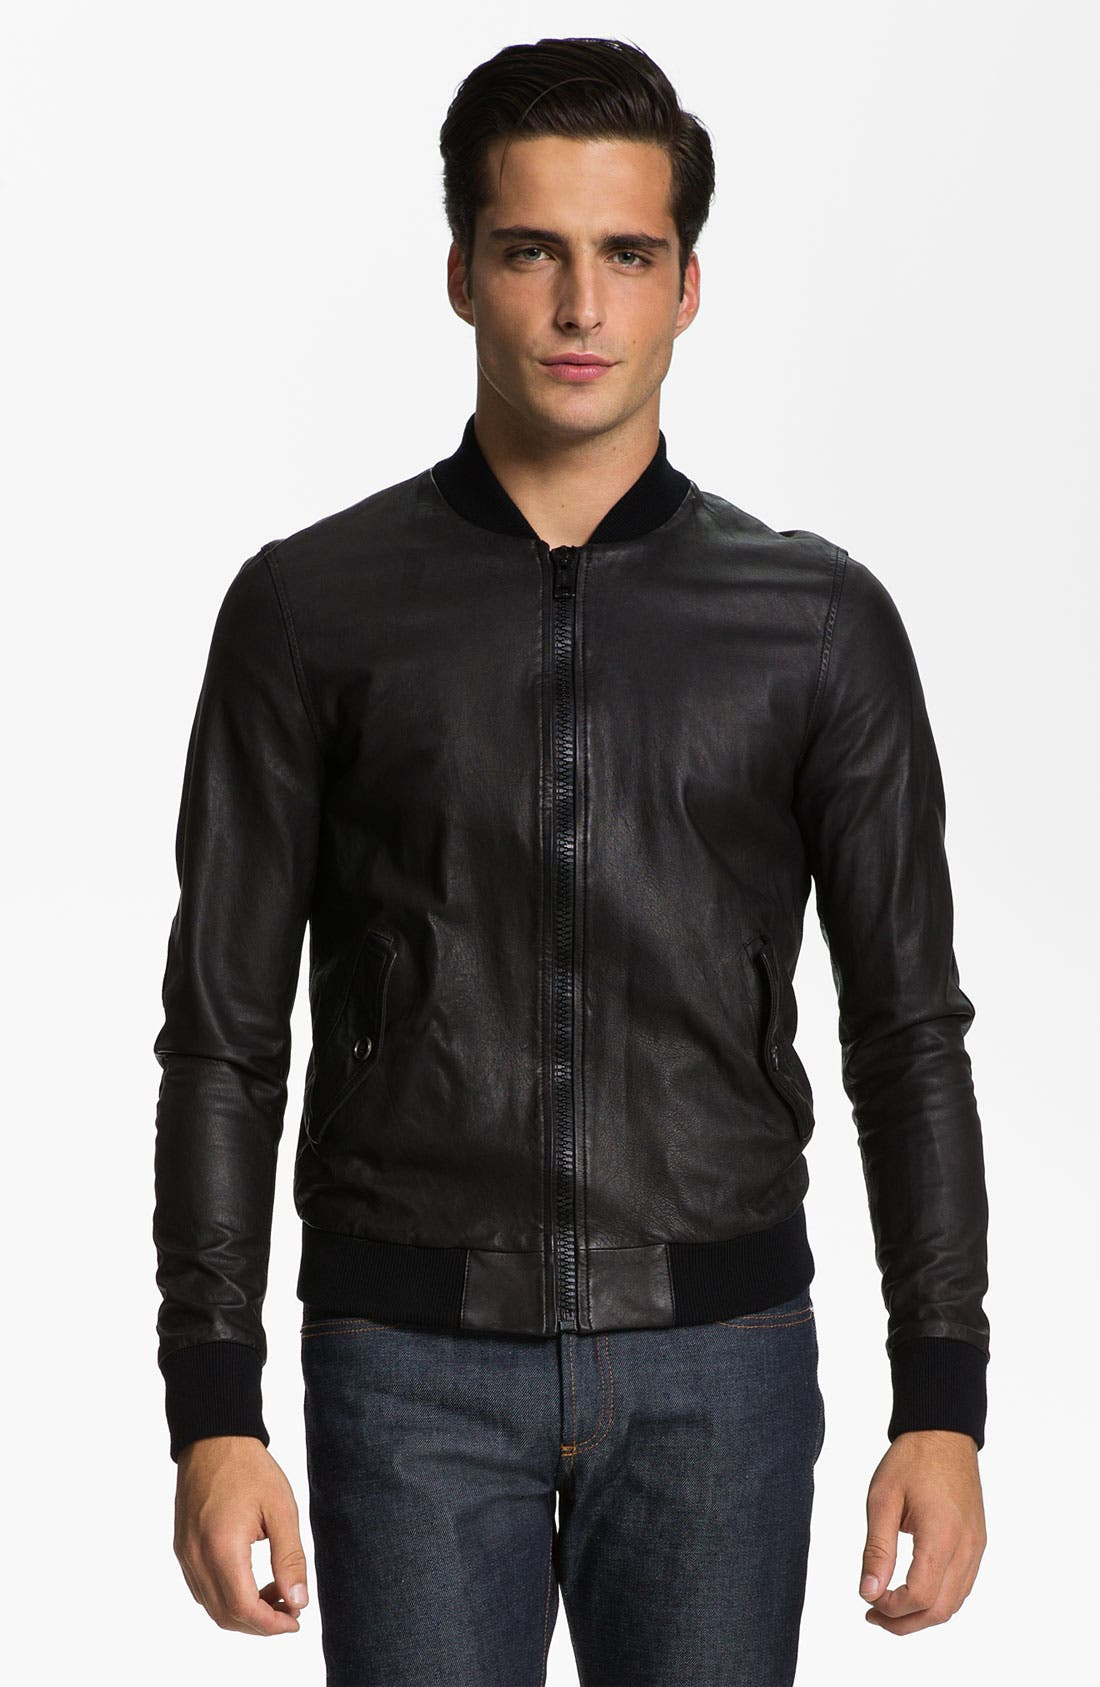 Alternate Image 1 Selected - Band of Outsiders Leather Bomber Jacket